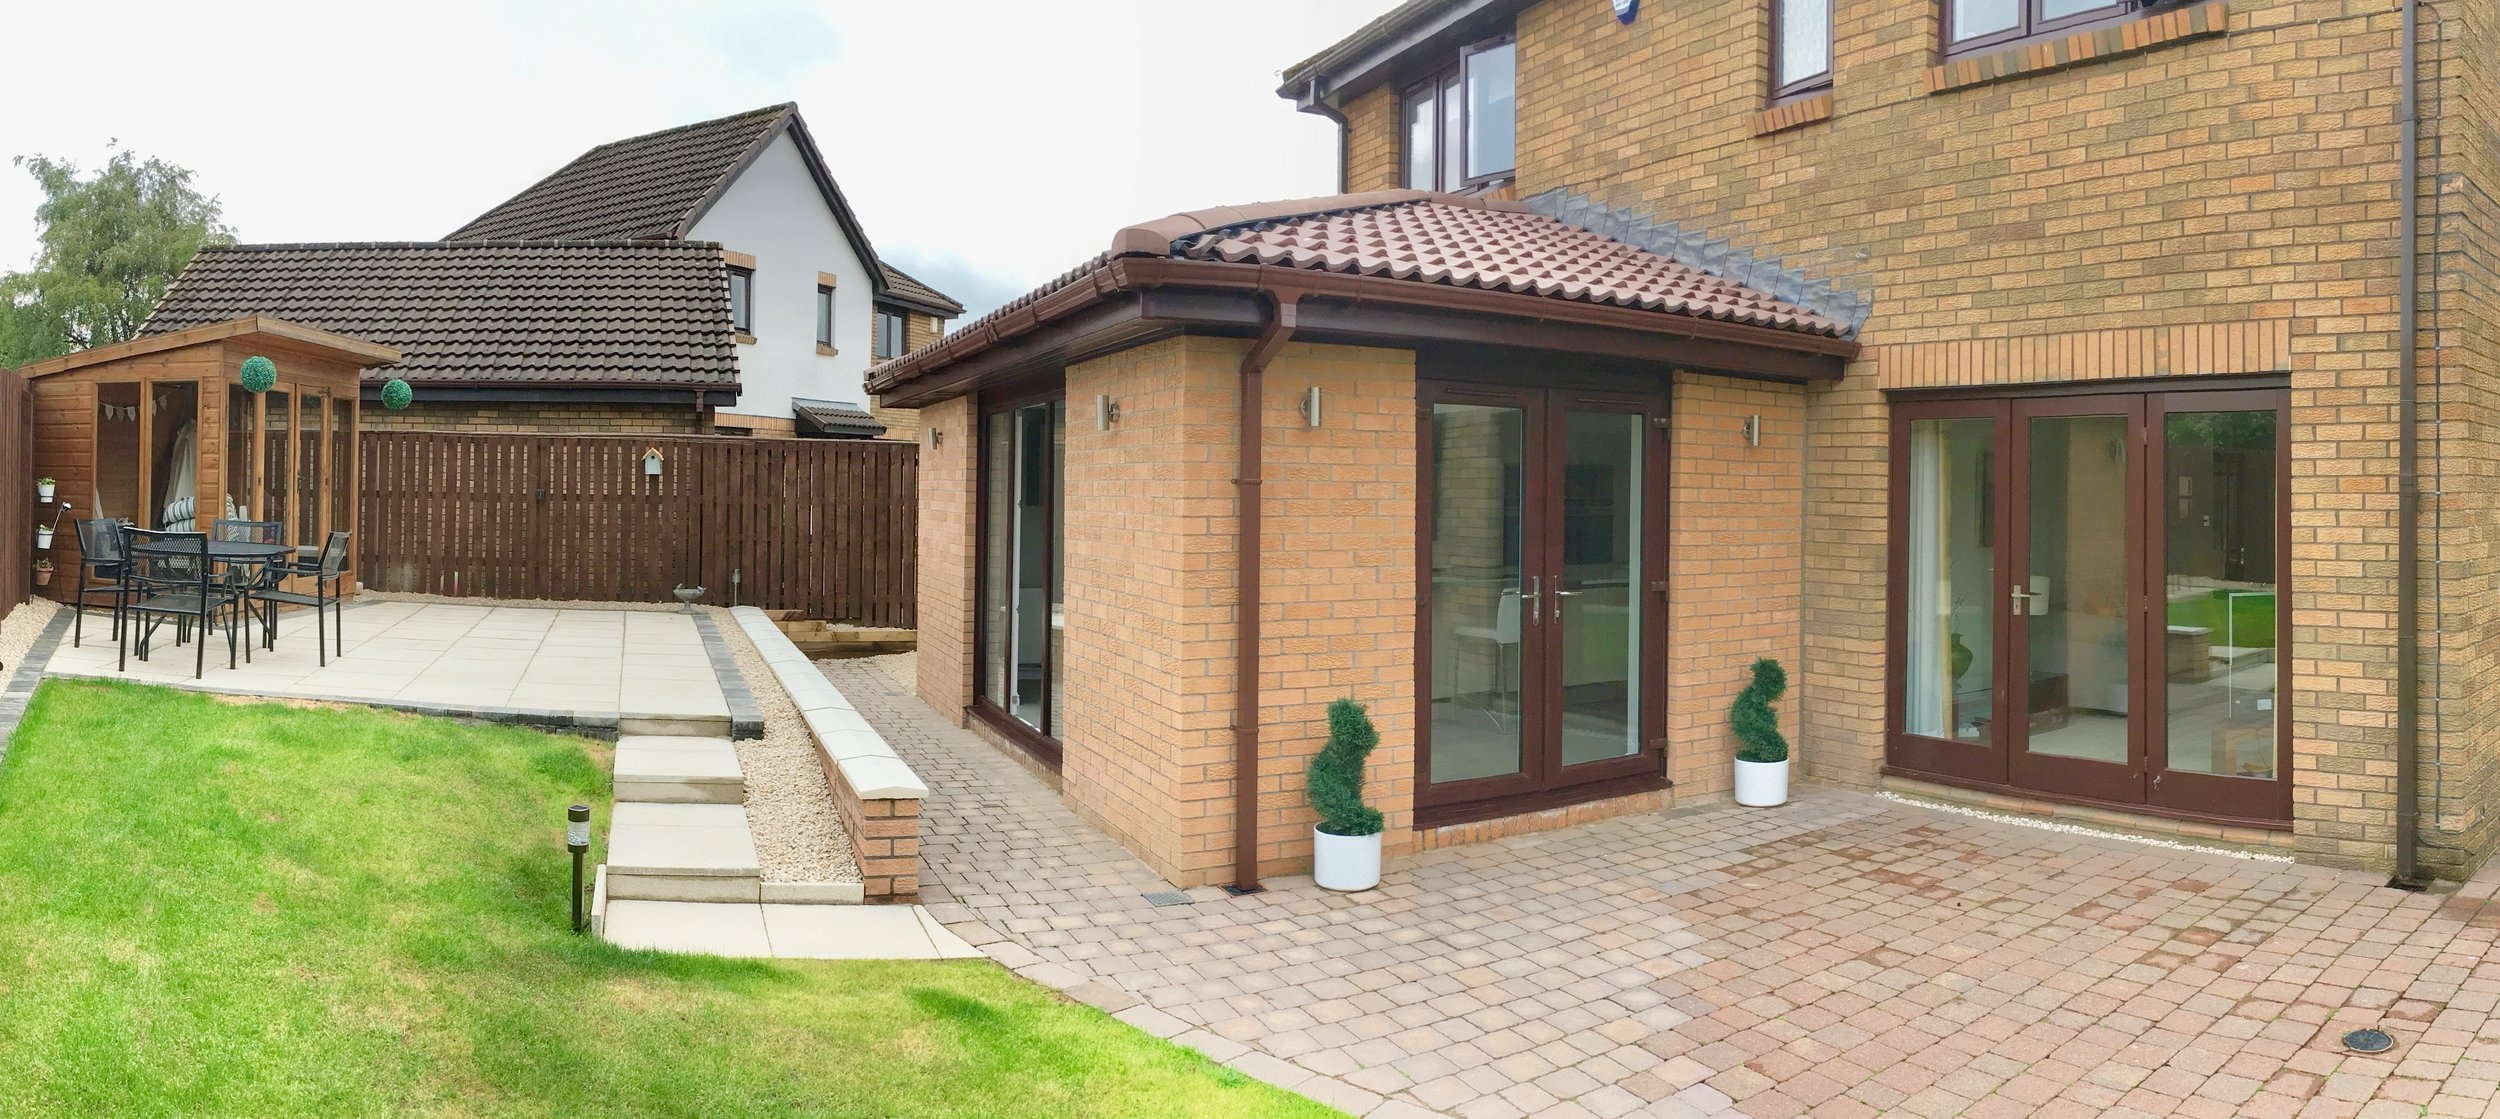 Single storey rear extension, Elderslie - An existing dark kitchen is turned it into a light thoughtfully designed extended kitchen and casual dining space for the family to enjoy...The project is now complete with very satisfied clients...